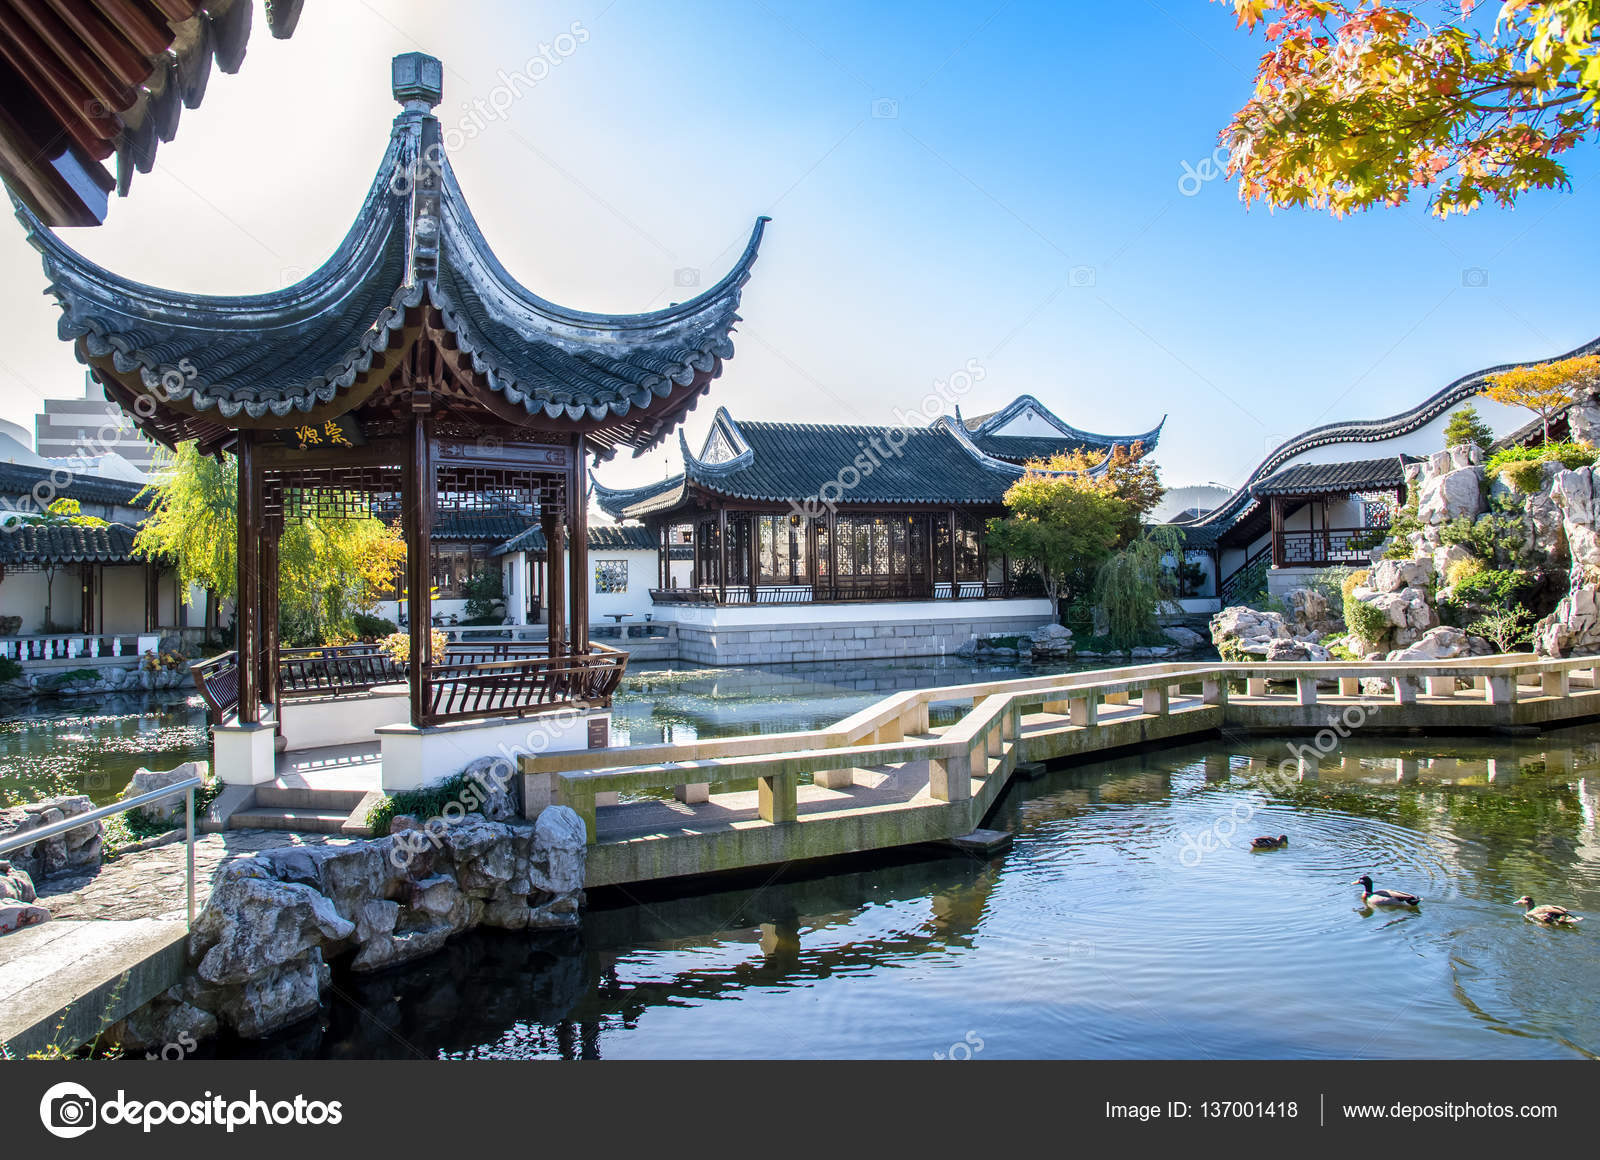 Zigzag Bridge Is One Of The Important Elements Of The Dunedin Chinese  Garden Design.It